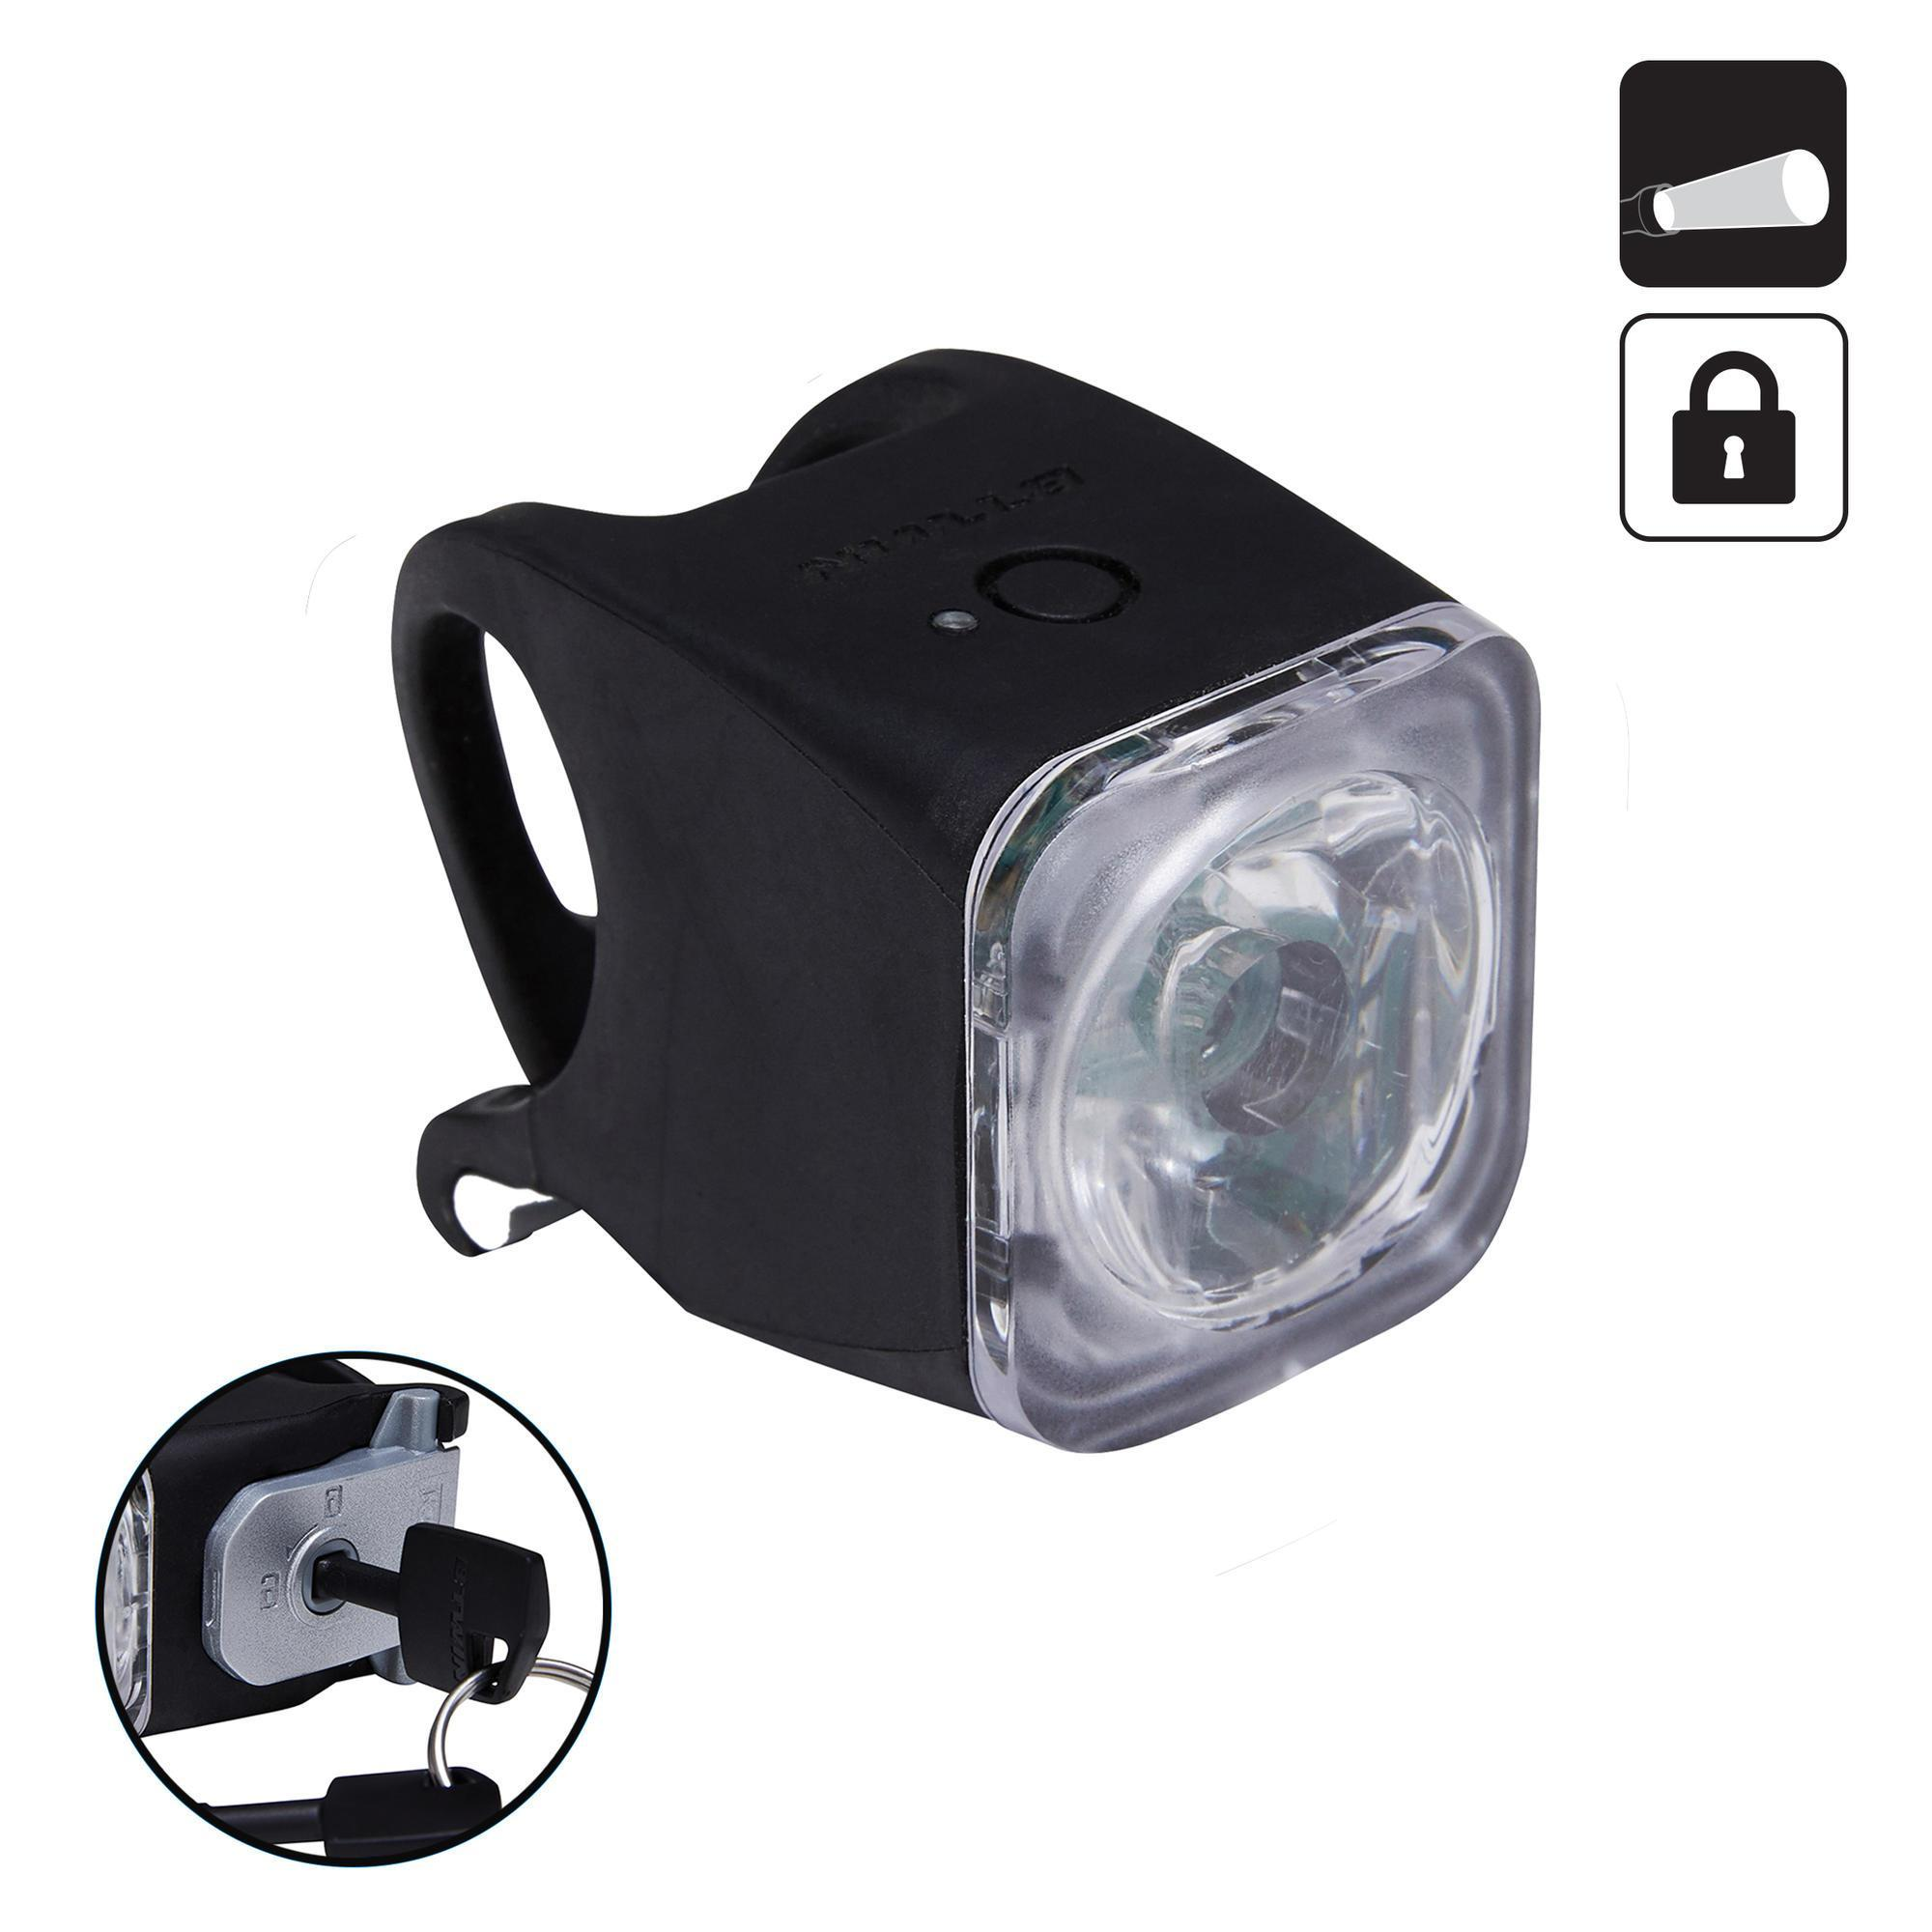 Eclairage Led Velo Eclairage Velo Led Fl 520 Avant Lock Usb